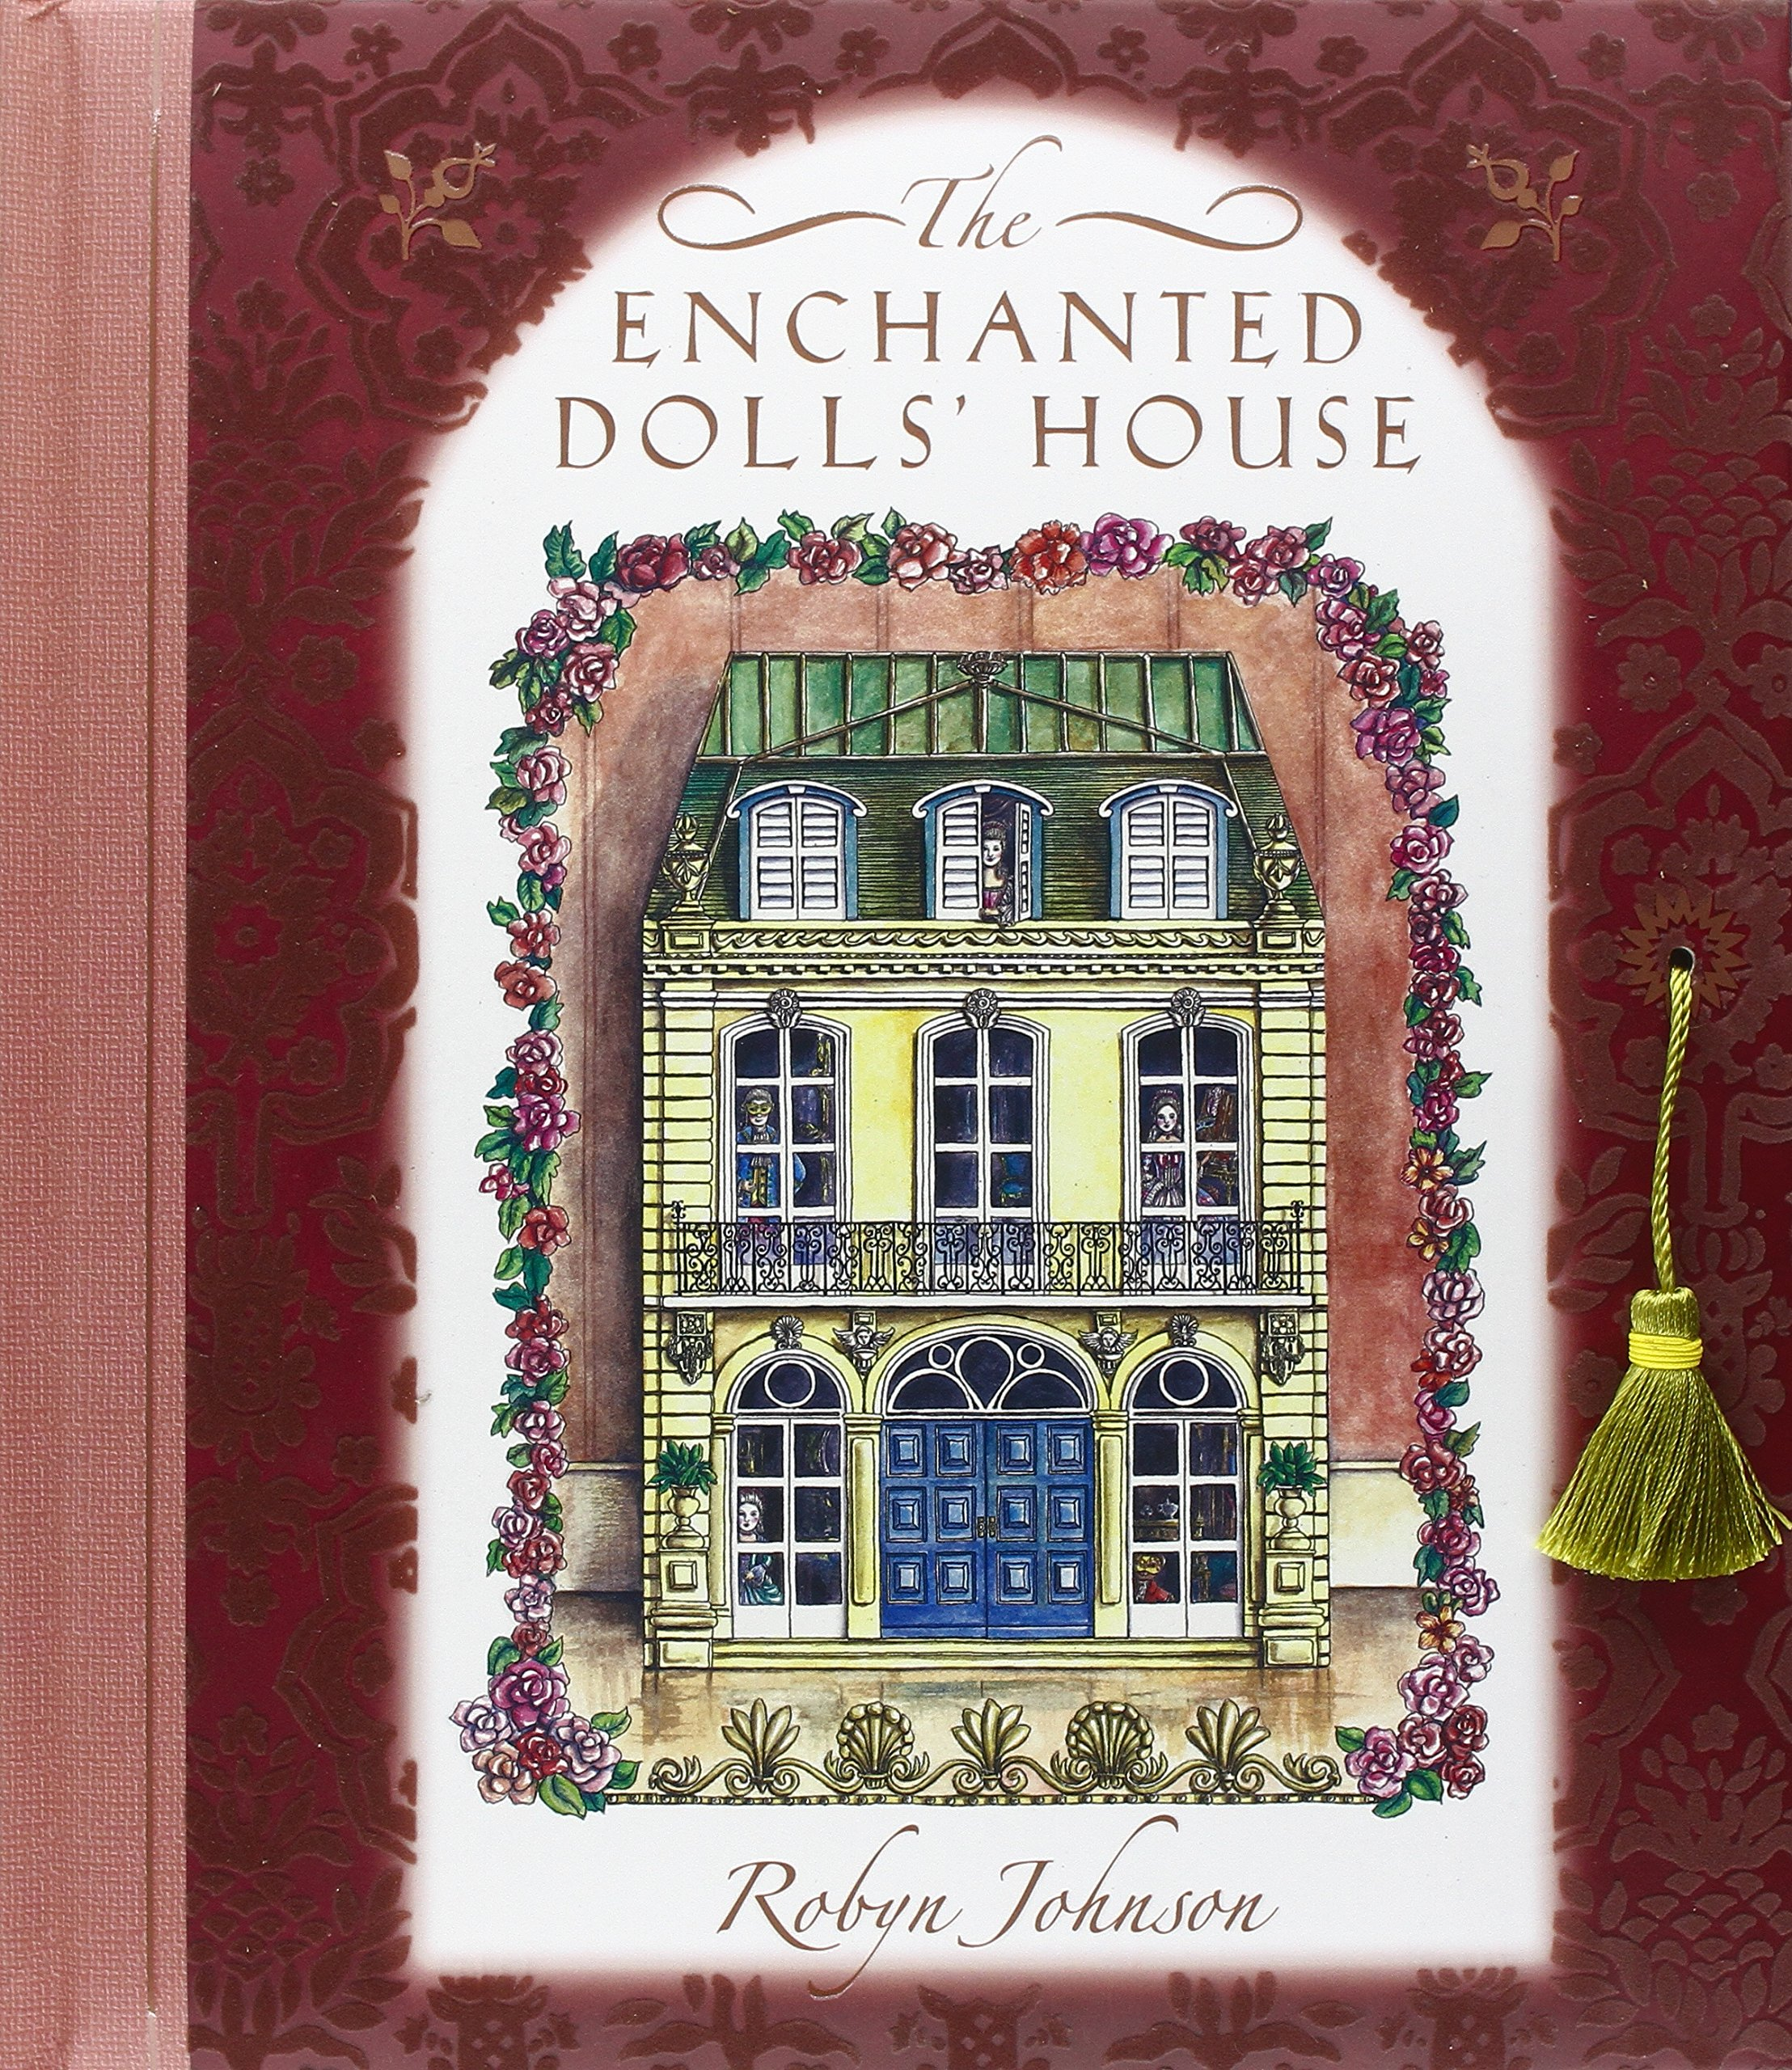 The Enchanted Dolls' House